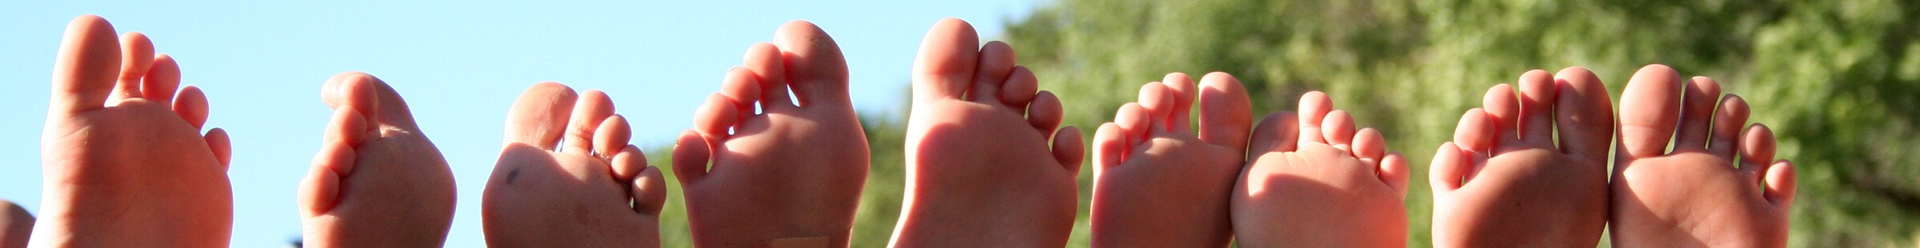 Lakeside Foot & Ankle Center - Leesburg Podiatry, CT